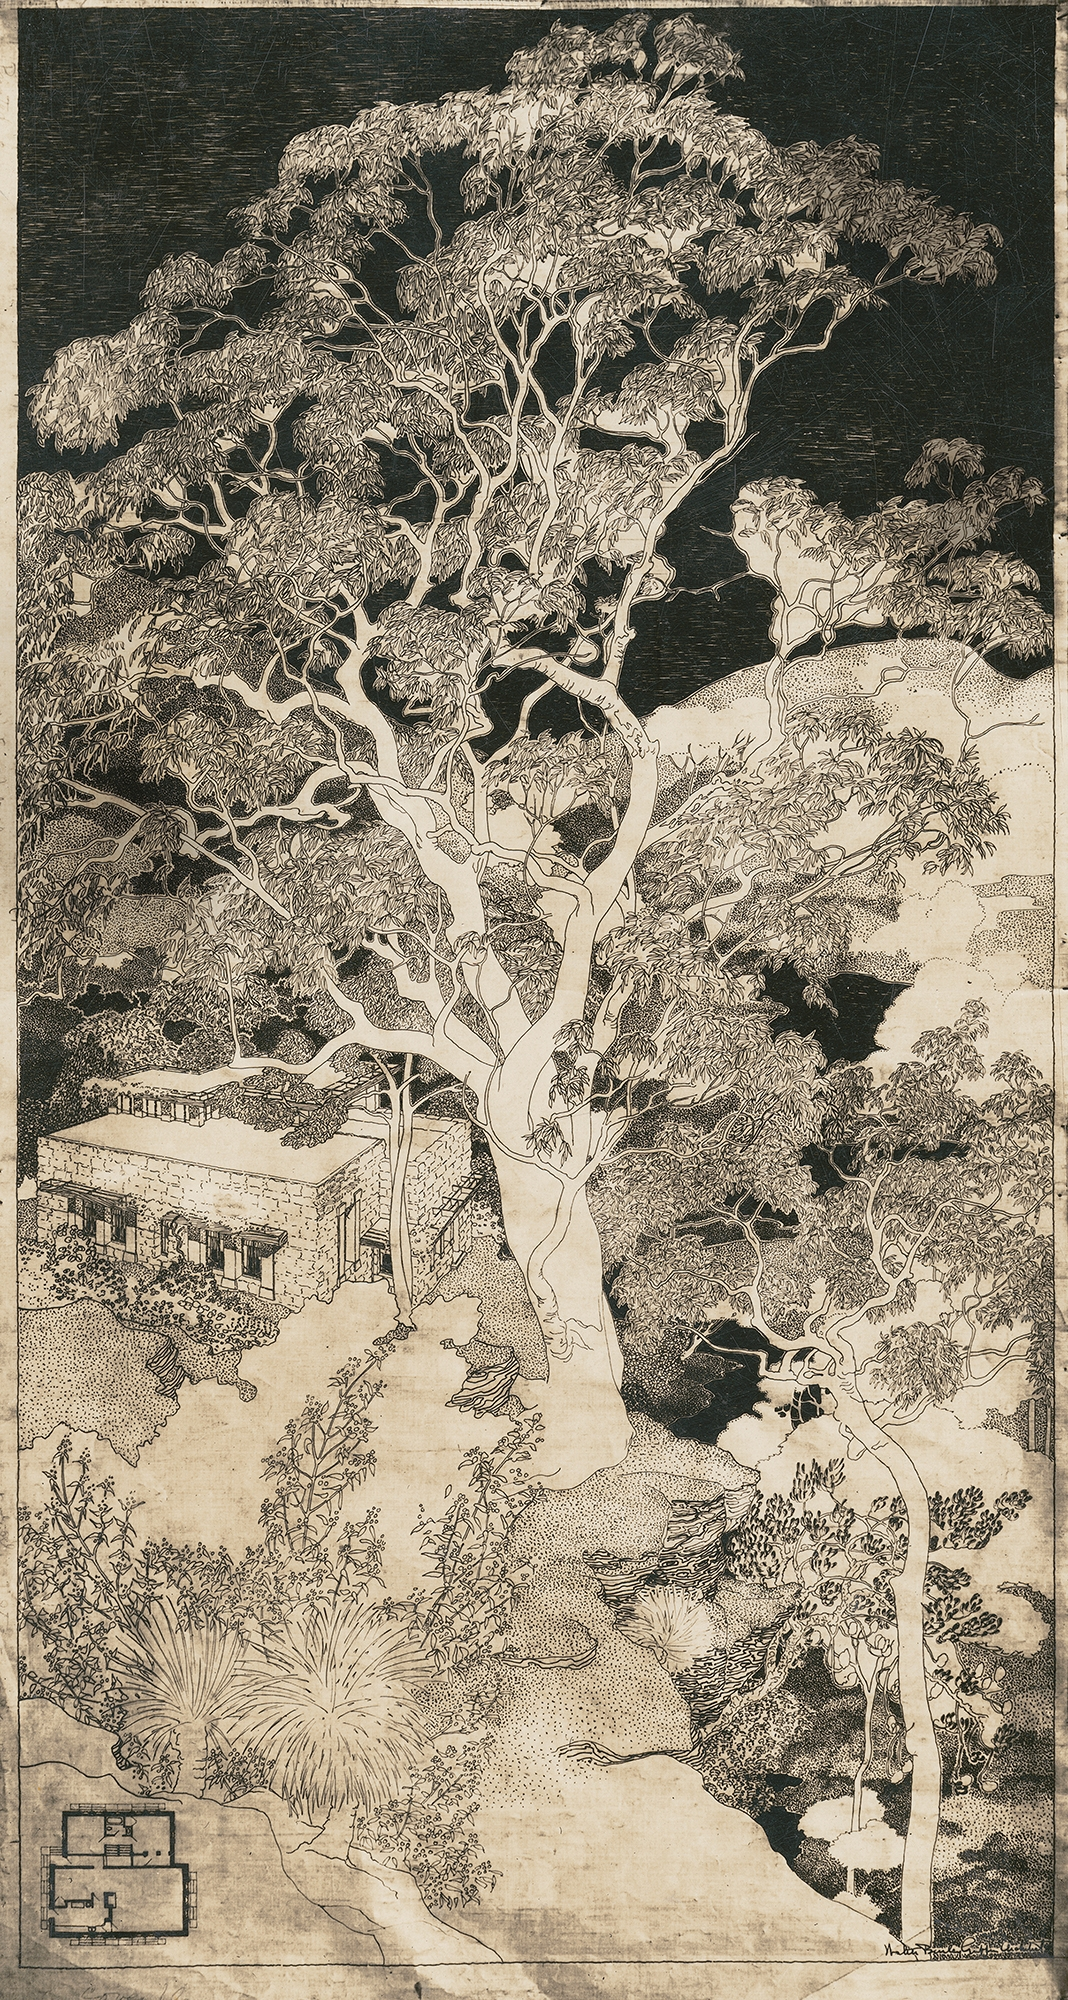 White on black illustration of tree and house.